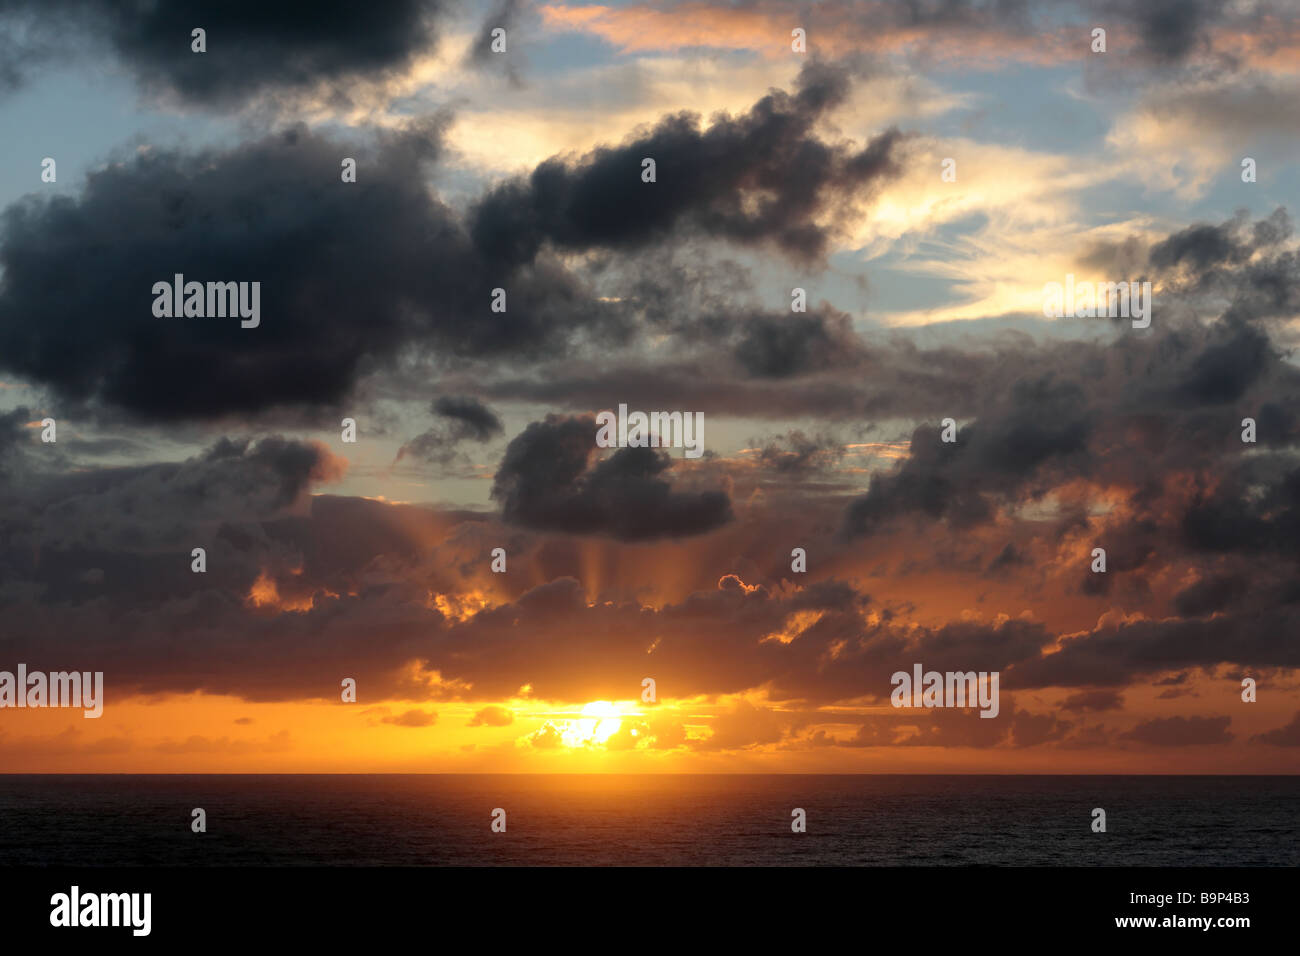 Sunrise over the pacific ocean with varying cloudscapes - Stock Image